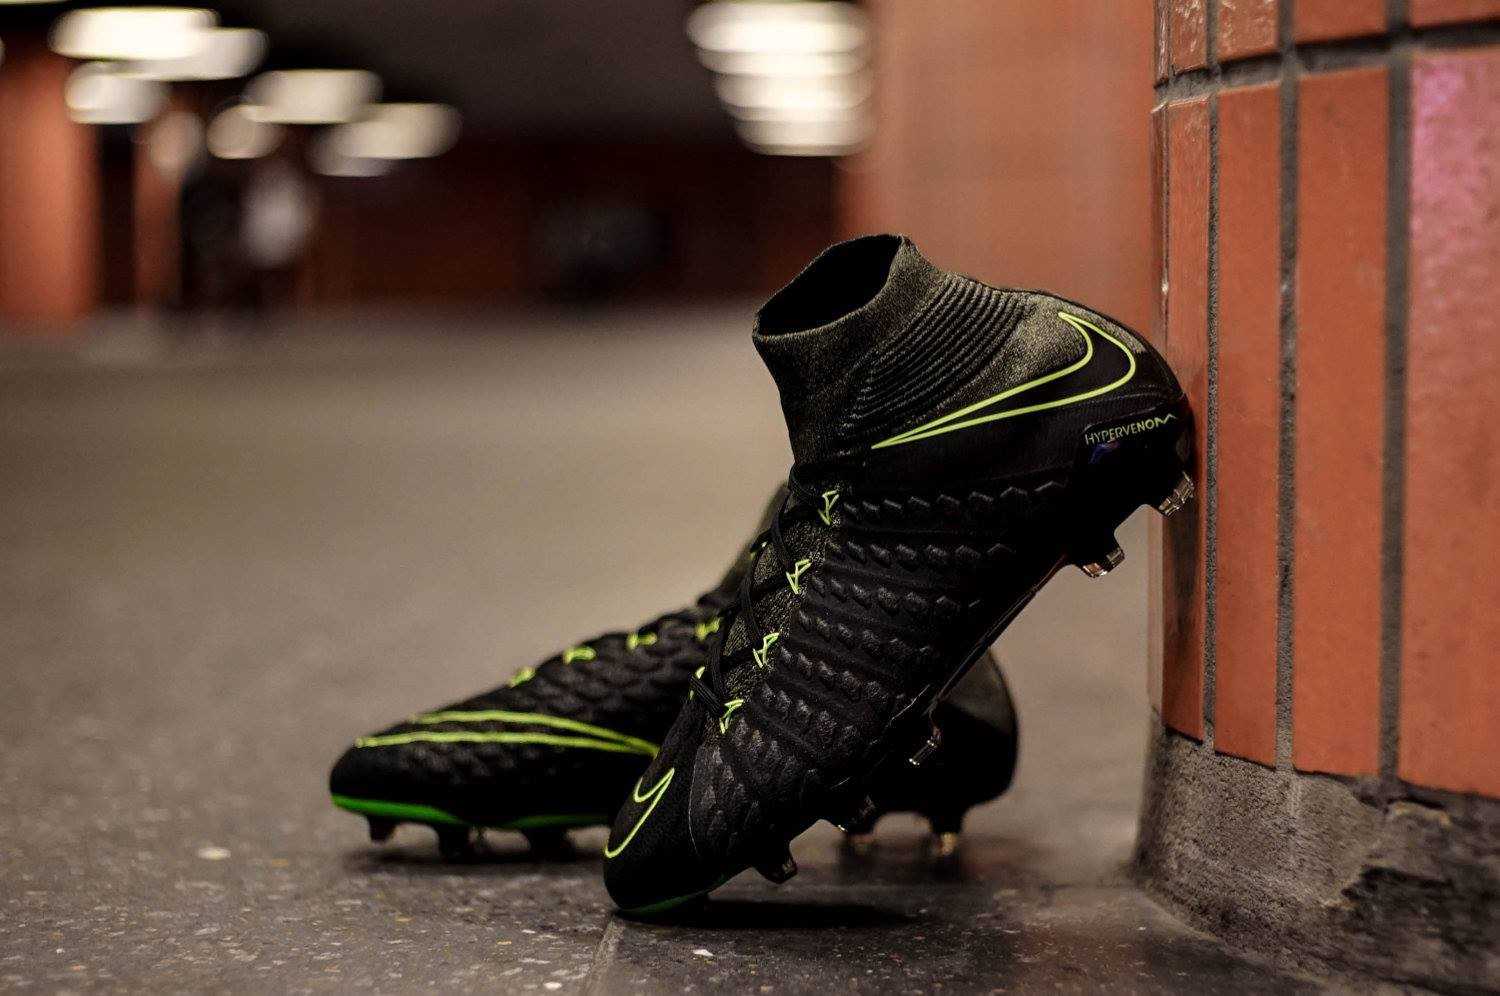 d7af0a3a8840 The volt outlining set the Tech Craft K-Leather Hypervenom apart from the  rest of the pack.